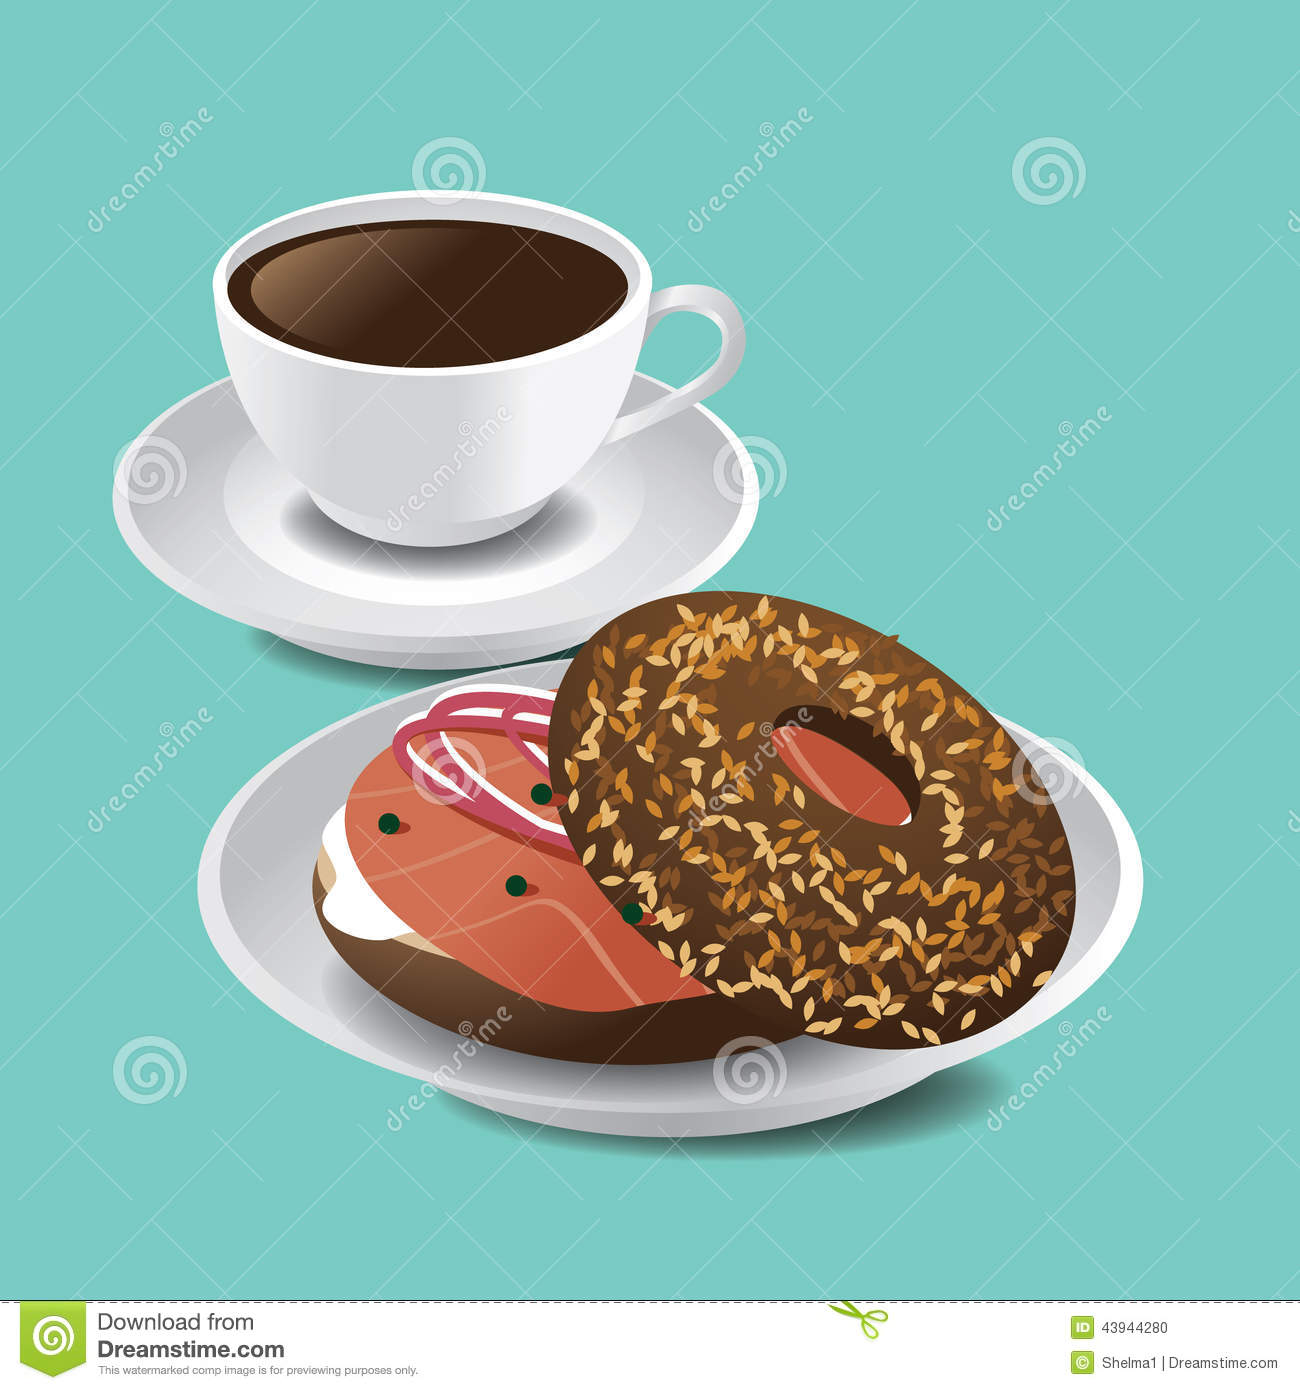 Bagel Lox Stock Photos, Images, & Pictures.